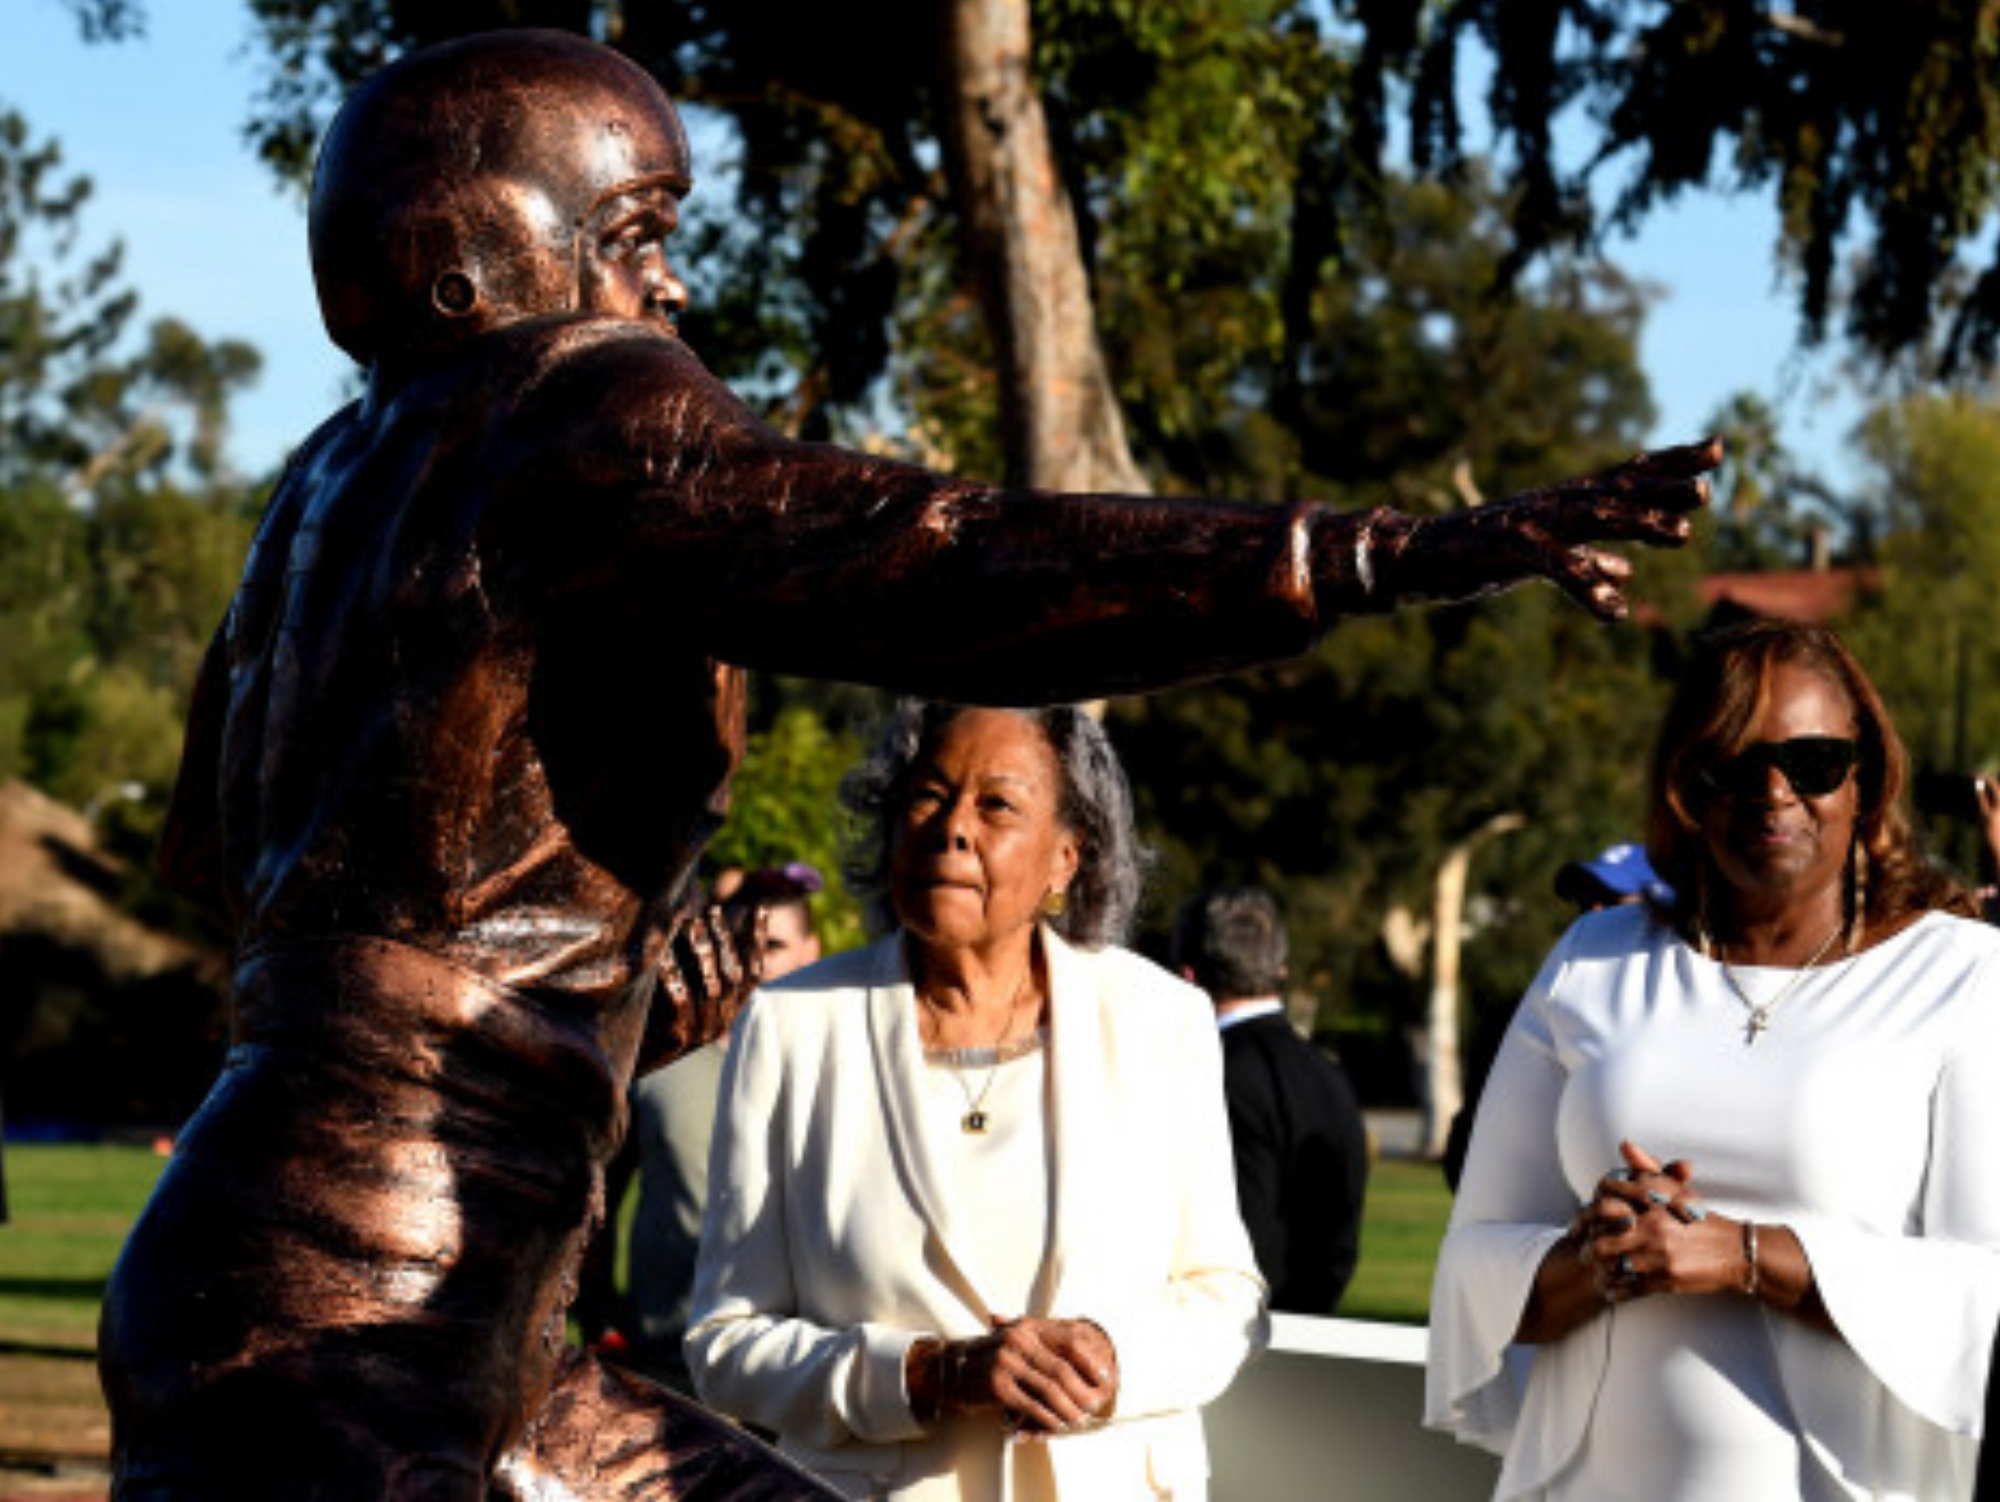 Rachel Robinson, left, with daughter Sharon Robinson during the unveiling a statue of Jackie Robinson by artist Brian Hanlon in the Rose Plaza as a gift from Alba and Thomas Tull's Tull Family Foundation at the Rose Bowl in Pasadena, Calif., on Wednesday, Nov. 29, 2017. (Photo by Keith Birmingham, Pasadena Star-News/SCNG)